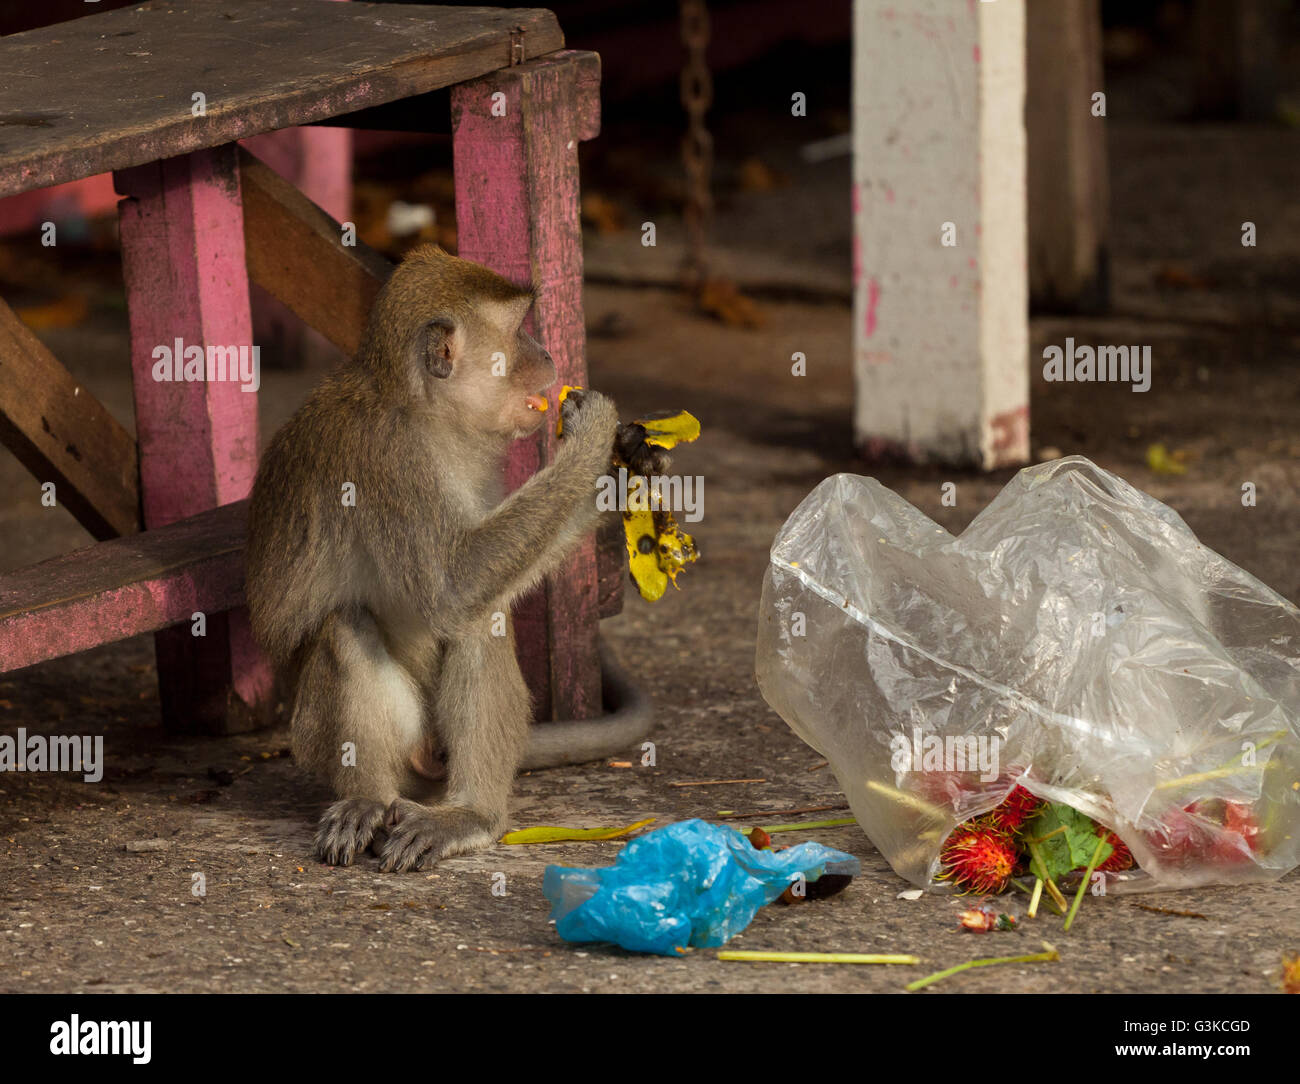 Wildlife monkey is steeling garbage, Brunei - Stock Image